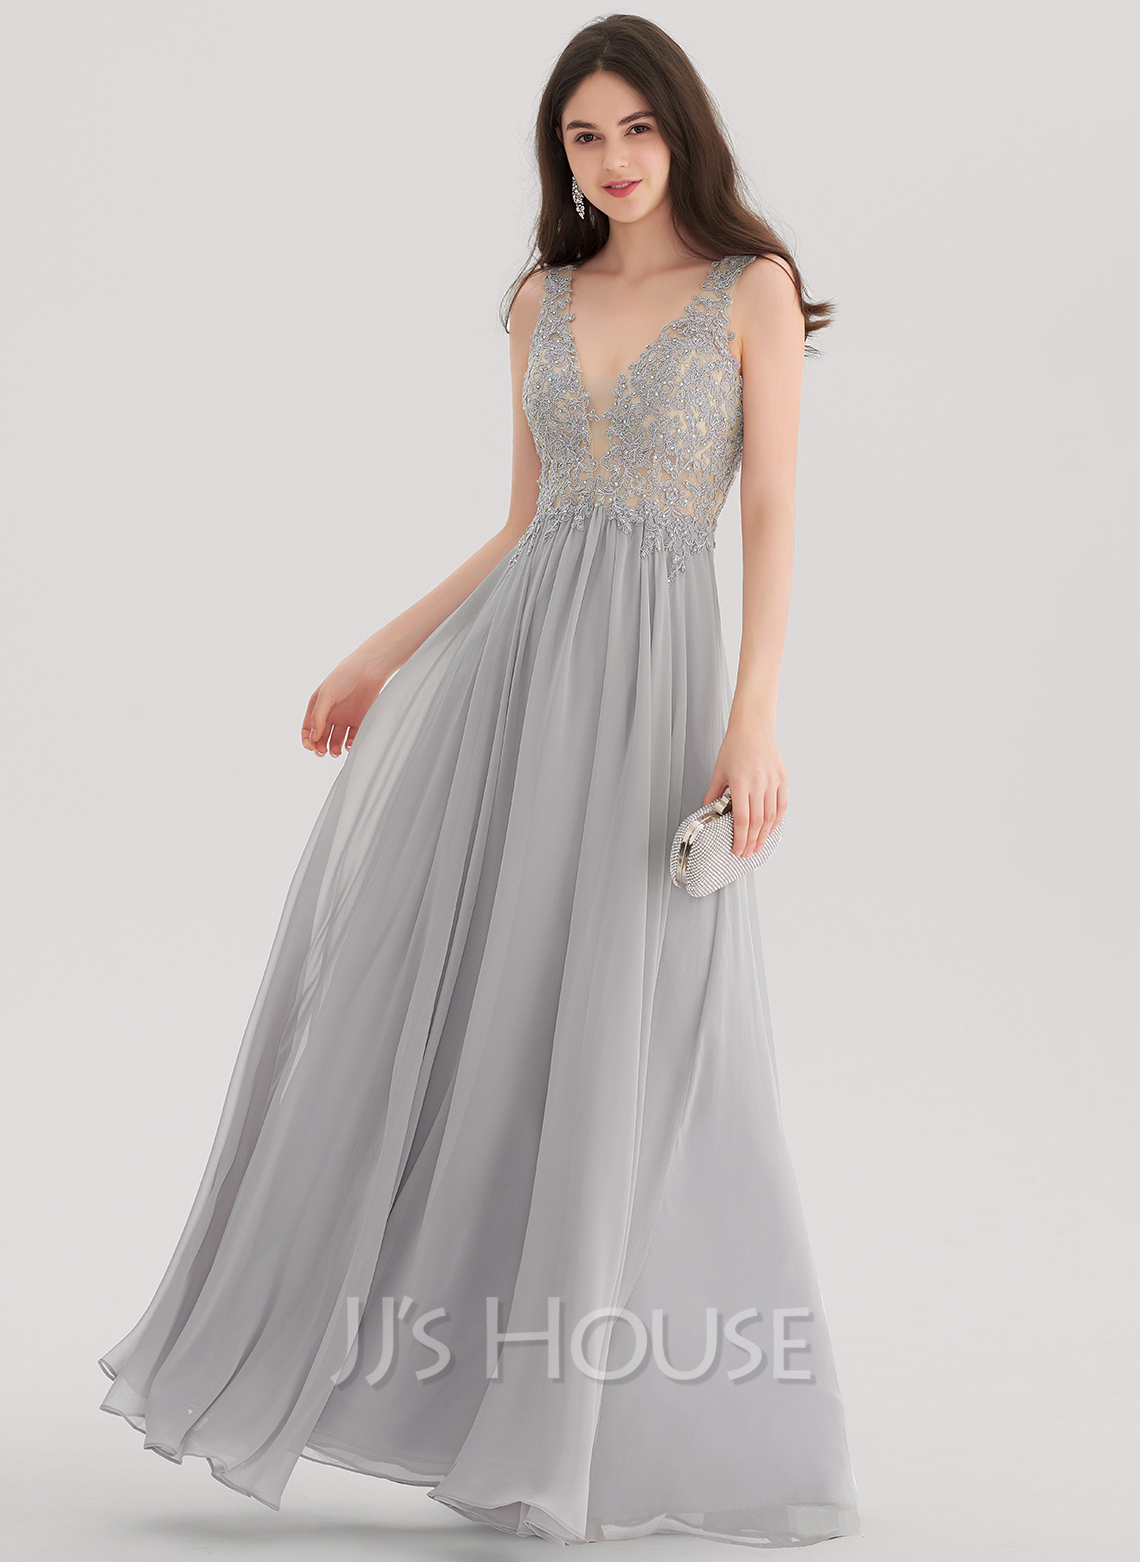 Chiffon Prom Dresses with Sleeves